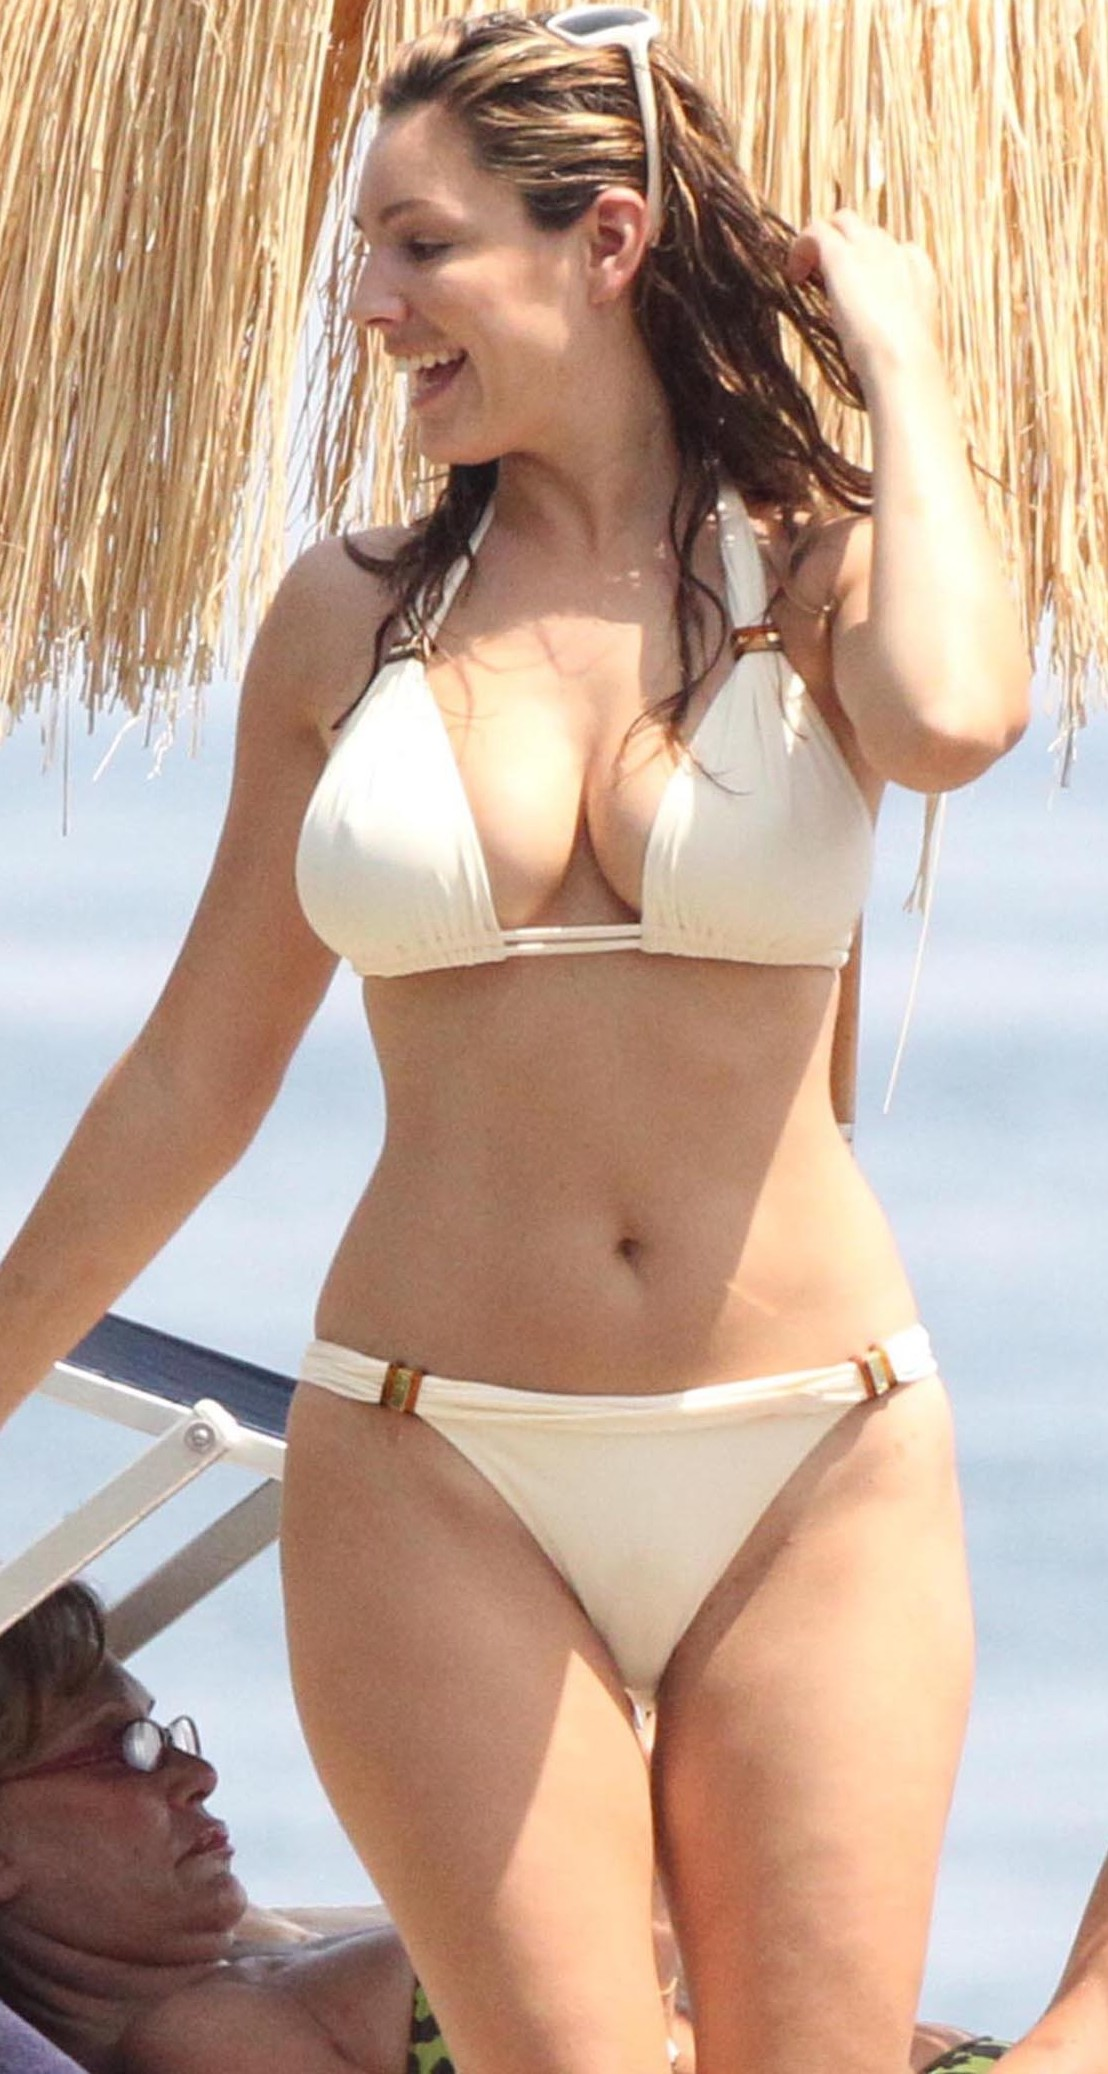 Absolutely Kelly brook camel toe precisely does